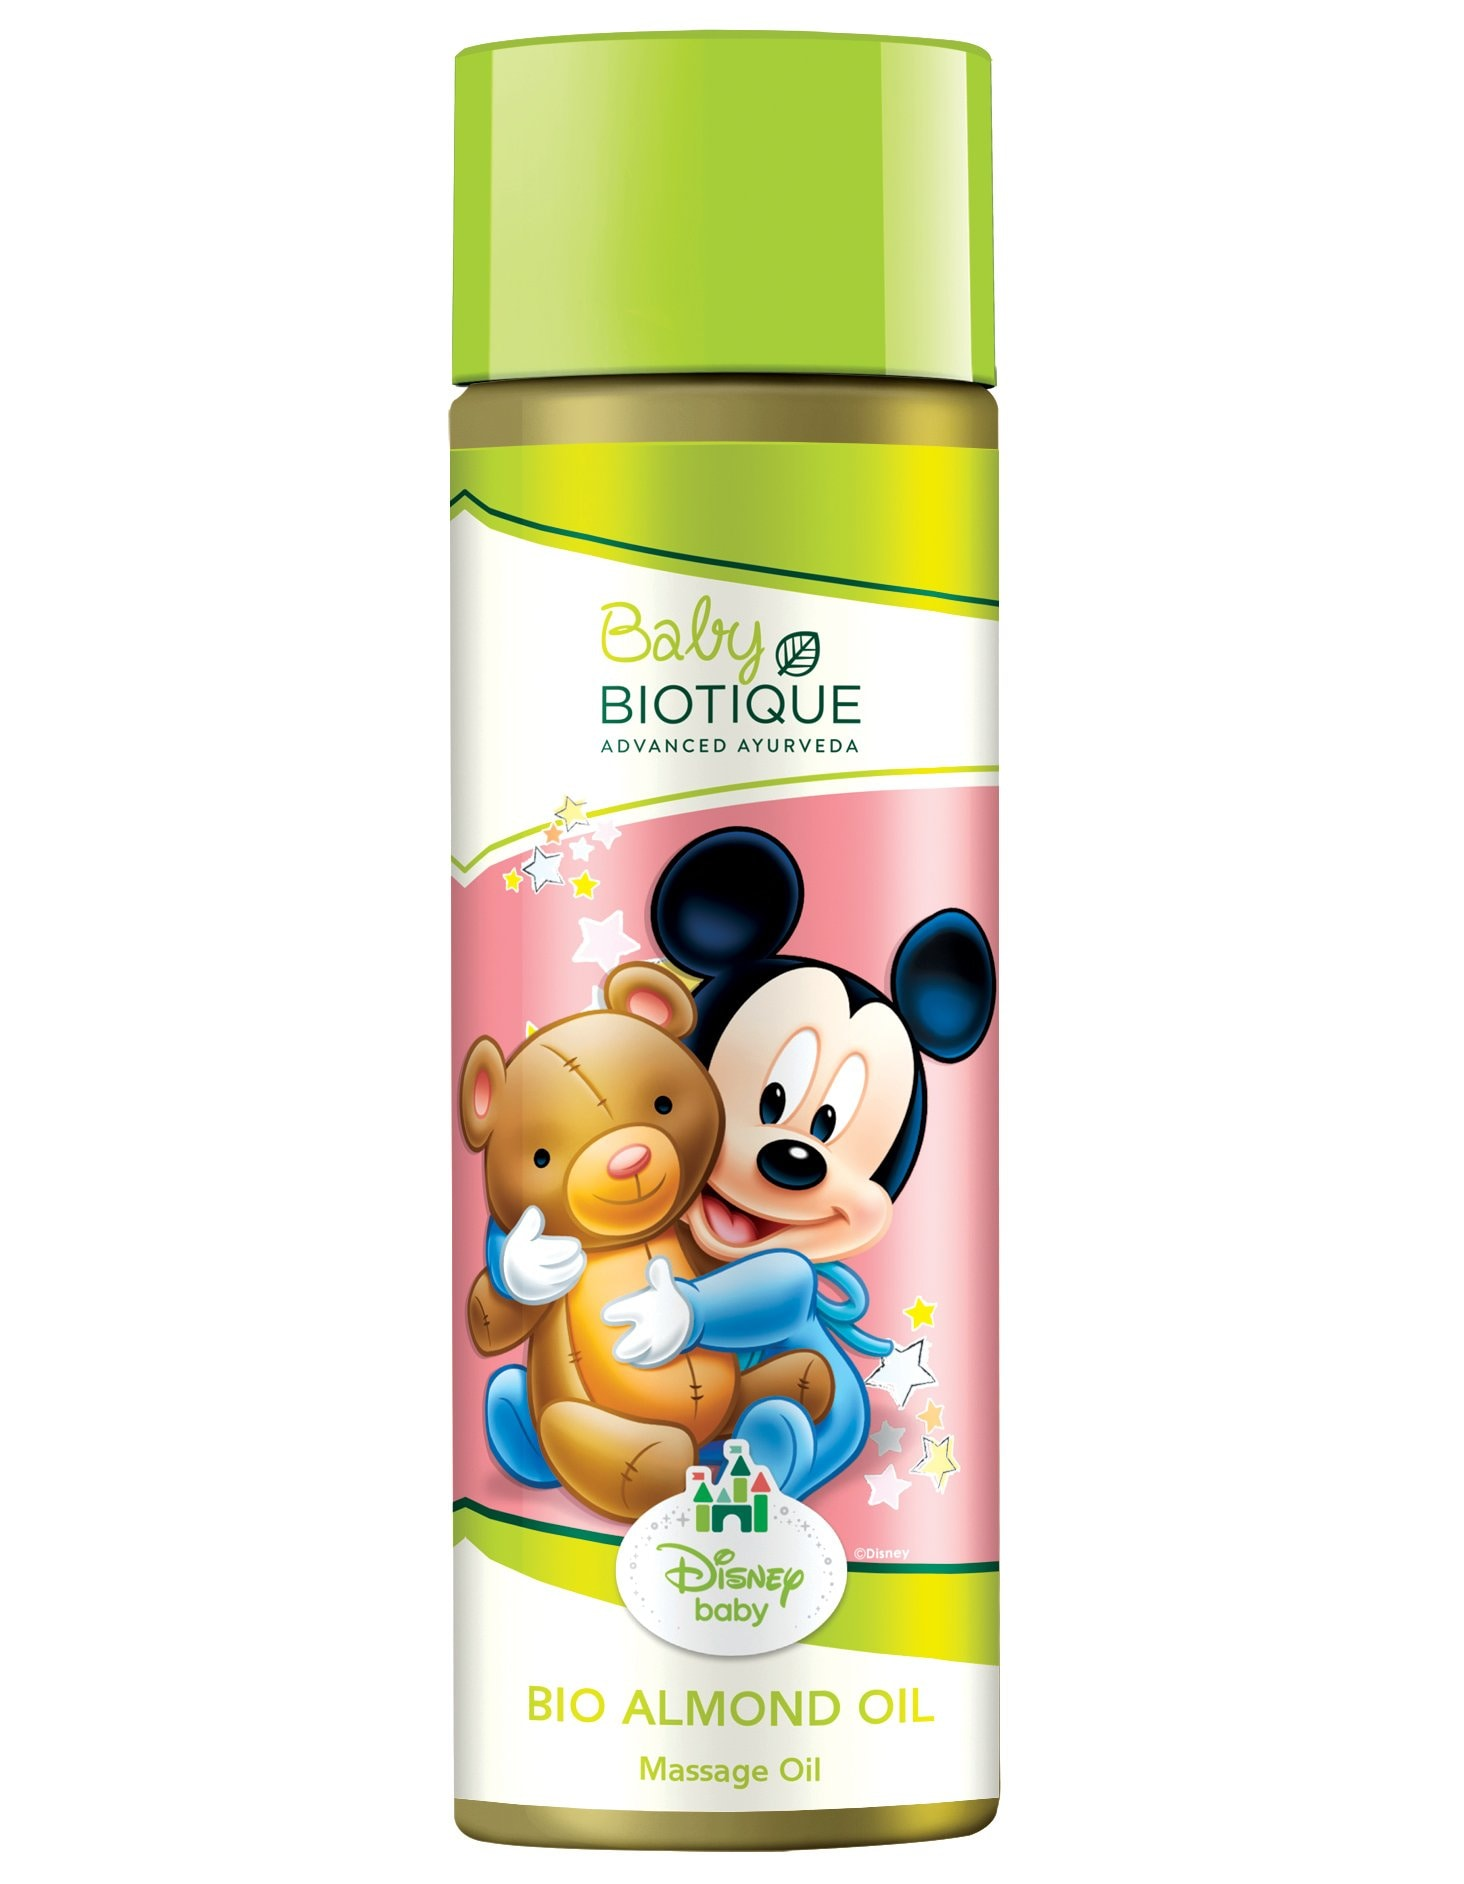 Biotique Almond Oil (Mickey) Massage Oil (200 ml)